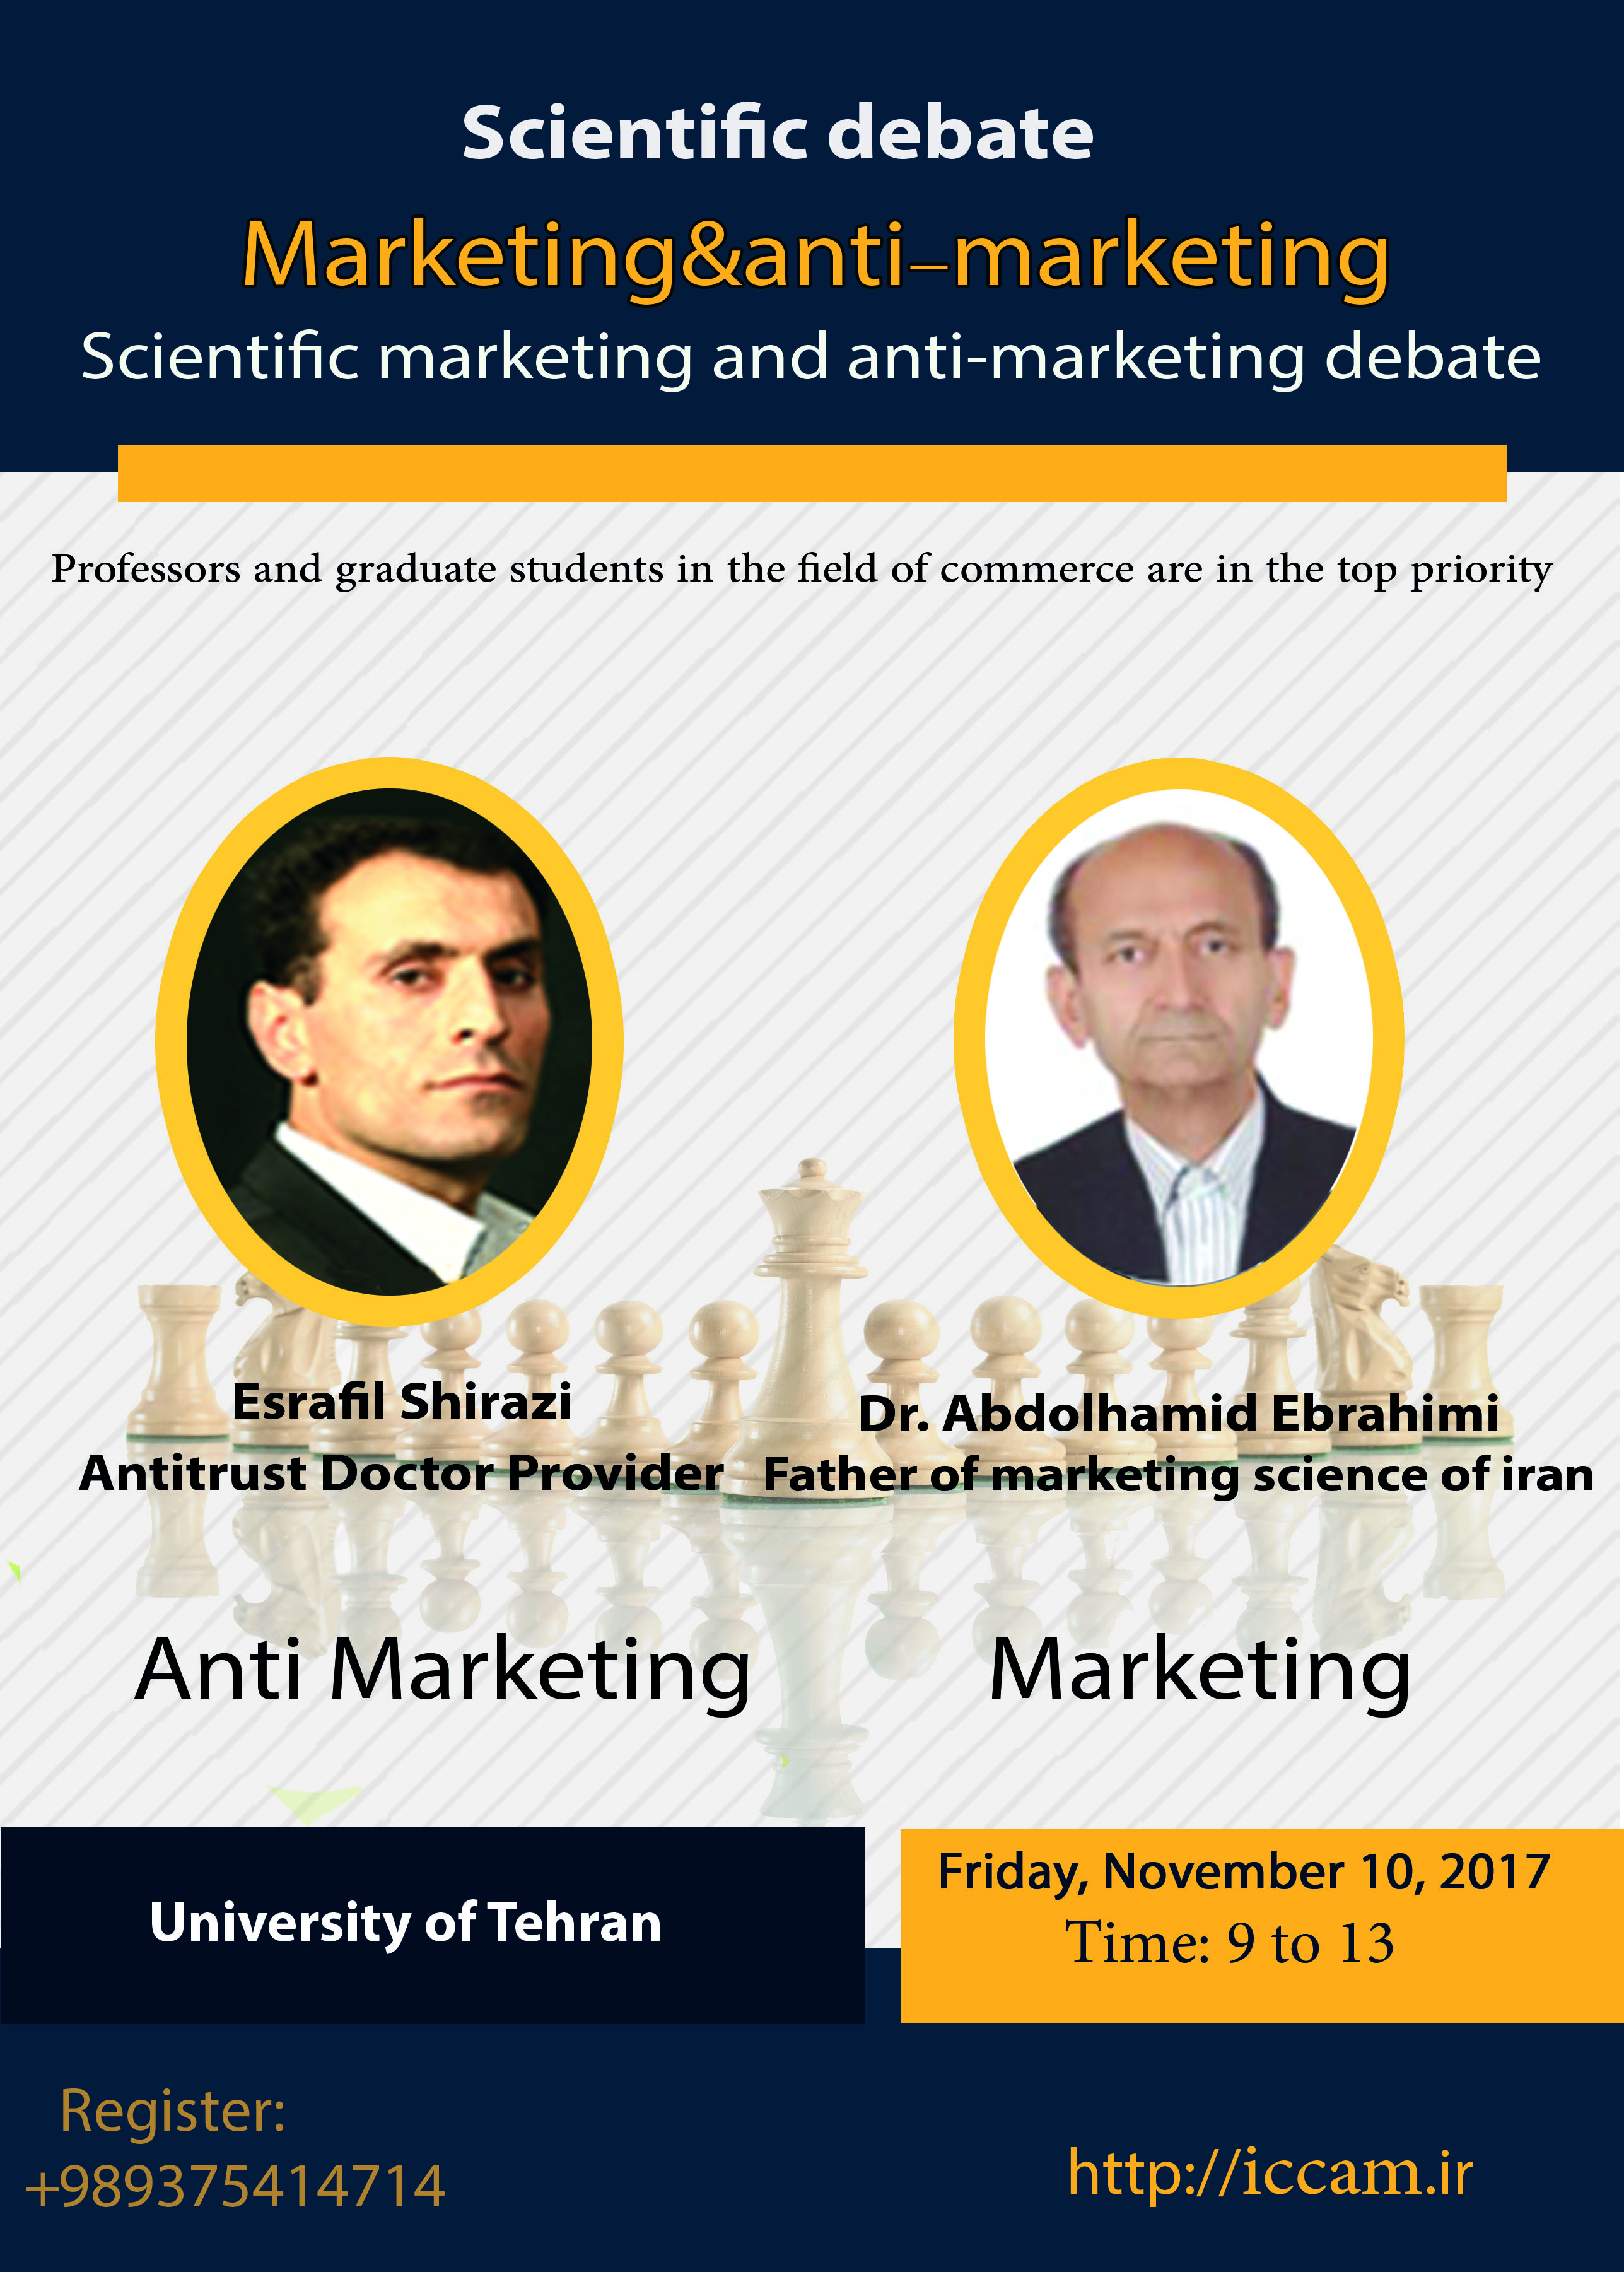 Scientific Marketing and Anti-Marketing Debate